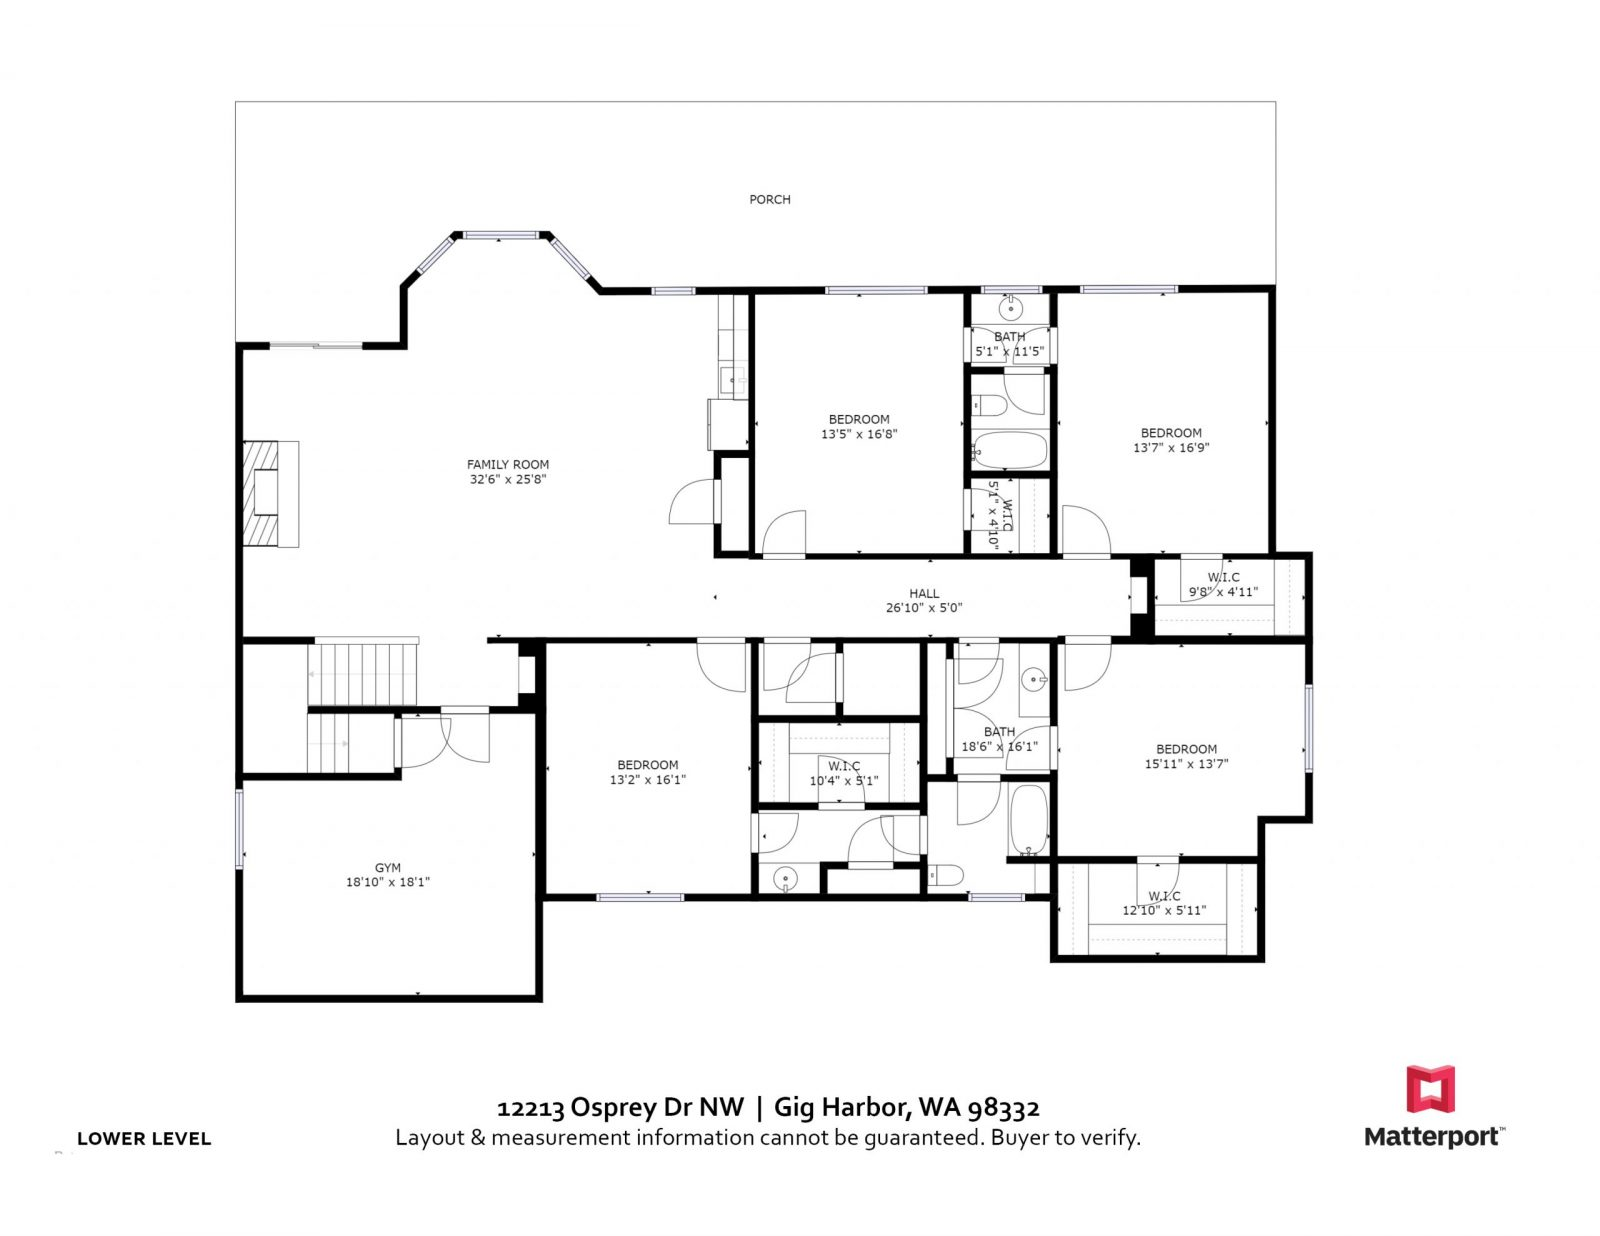 LOWER FLOOR:  12213 Osprey Dr, Gig Harbor WA 98332